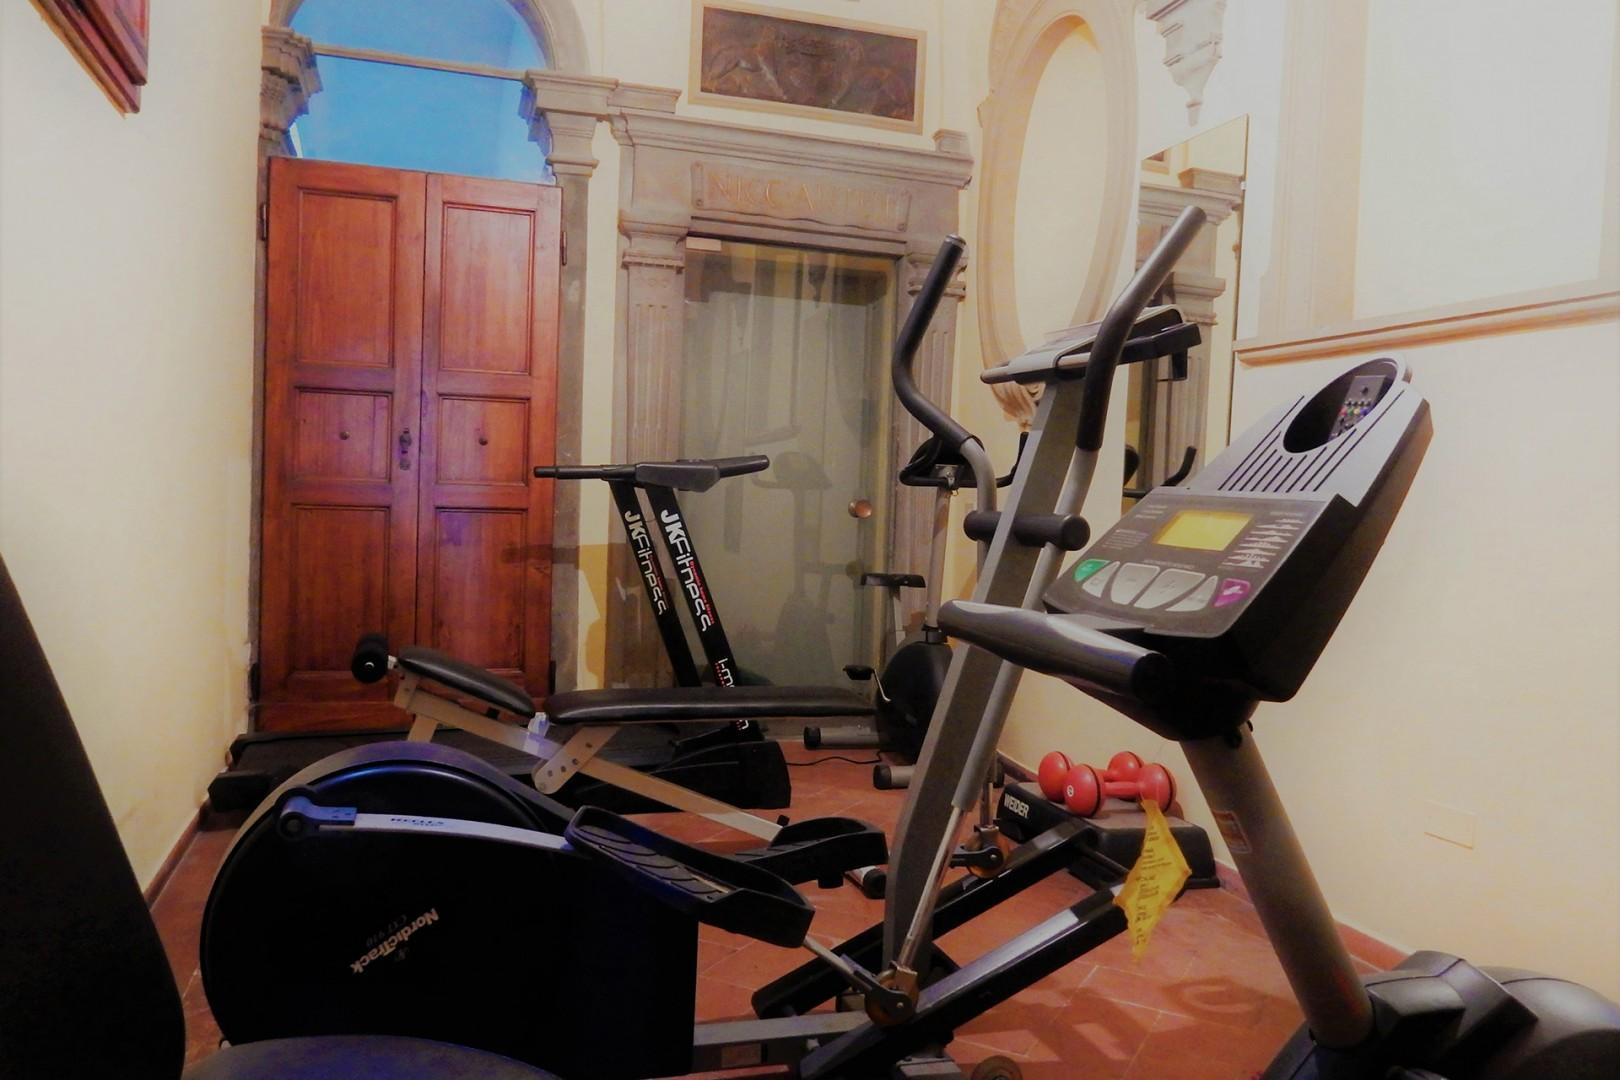 A little gym for the guests in Palazzo Santa Croce.